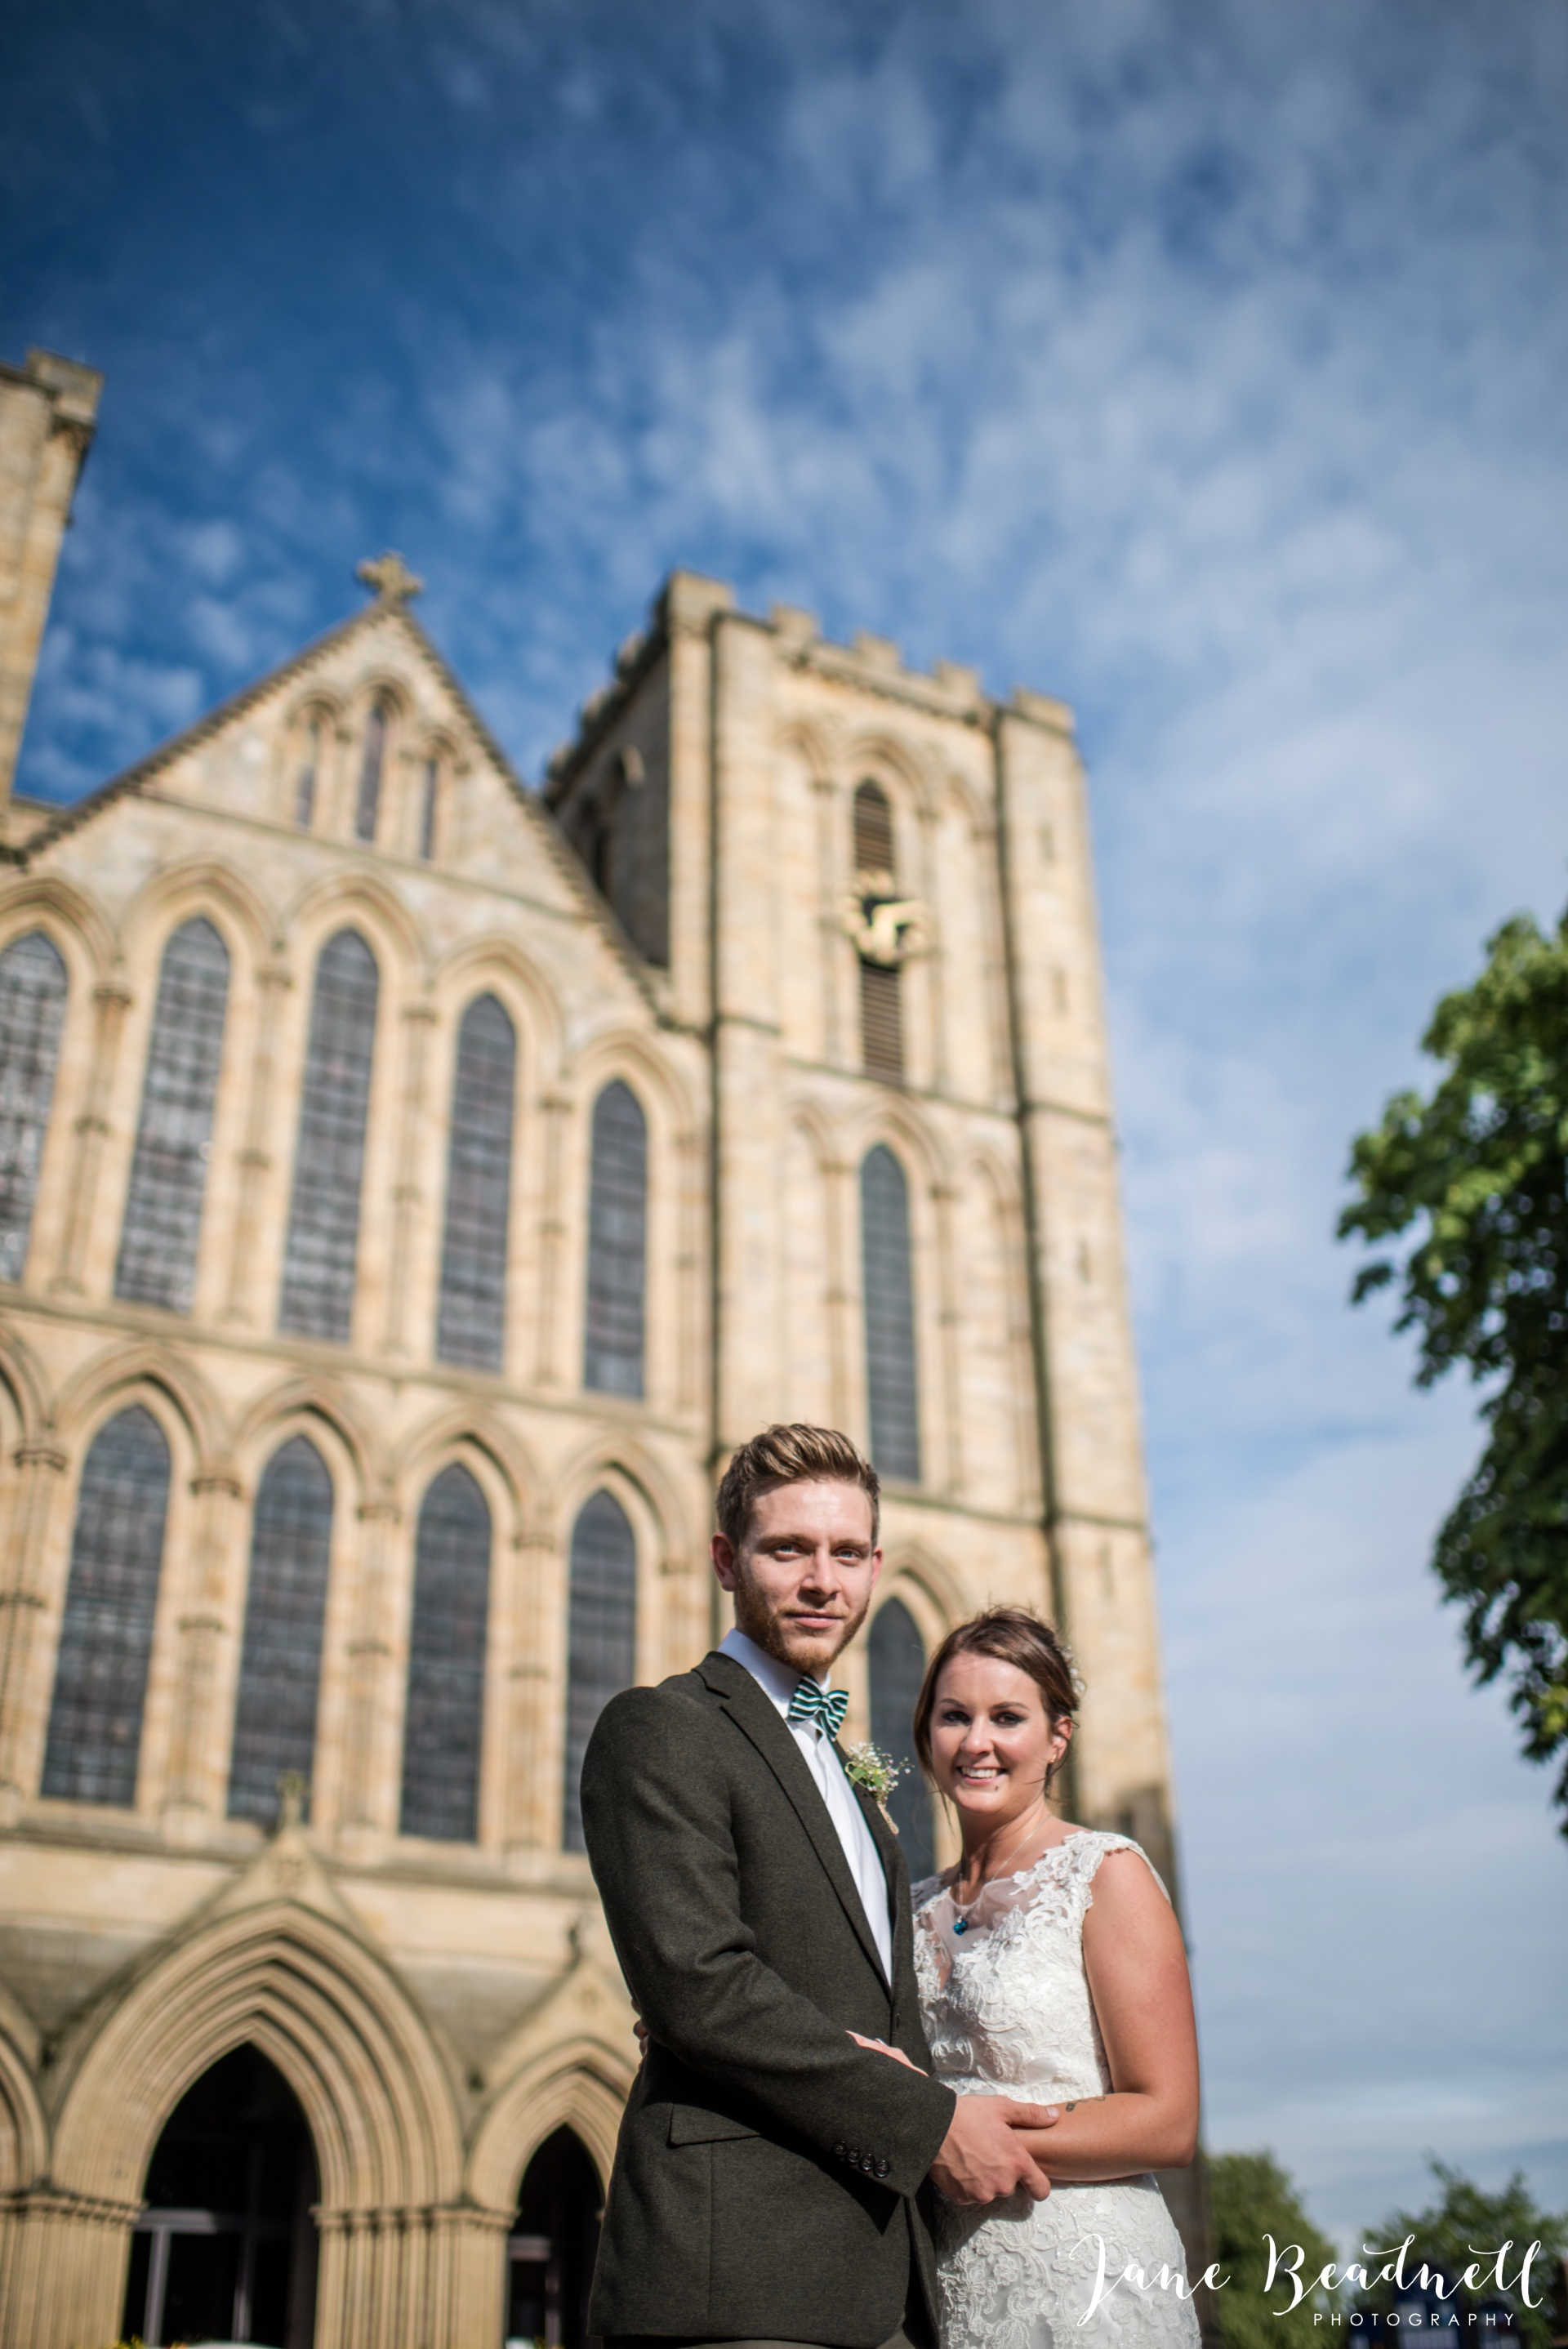 Jane Beadnell fine art wedding photographer The Old Deanery Ripon_0069